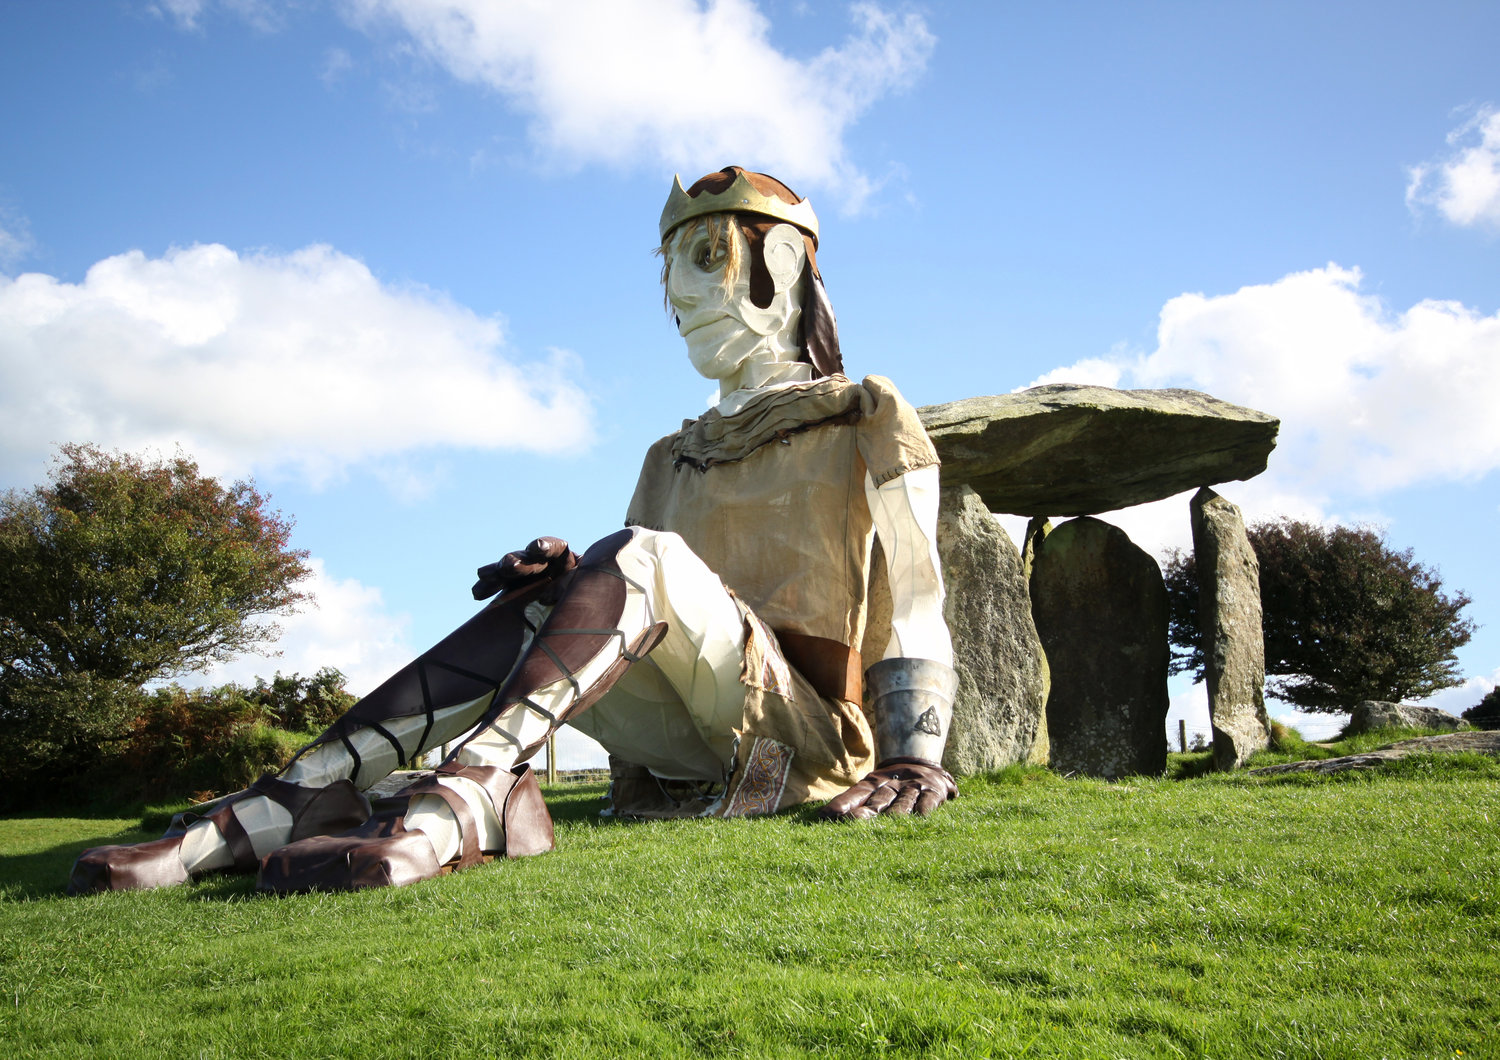 Bendigeidfran (Brân the Blessed) sitting against the Megalithic burial chamber Pentre Ifan (North Pembrokshire, Wales), in <em>The <em>Healing of Brân / Iachau Bendigeidfran</em></em> (2010) by Small World Theatre (Cardigan, Wales, UK). Human-powered giant puppet, height: 7.6 m. An epic outdoor performance based on Welsh folklore and the Tales of the Mabinogion, performed in Welsh and English, with giant puppetry, actors on giant tricycles and a boat, street artists, local choirs, community participation. Photo: Sam Vicary